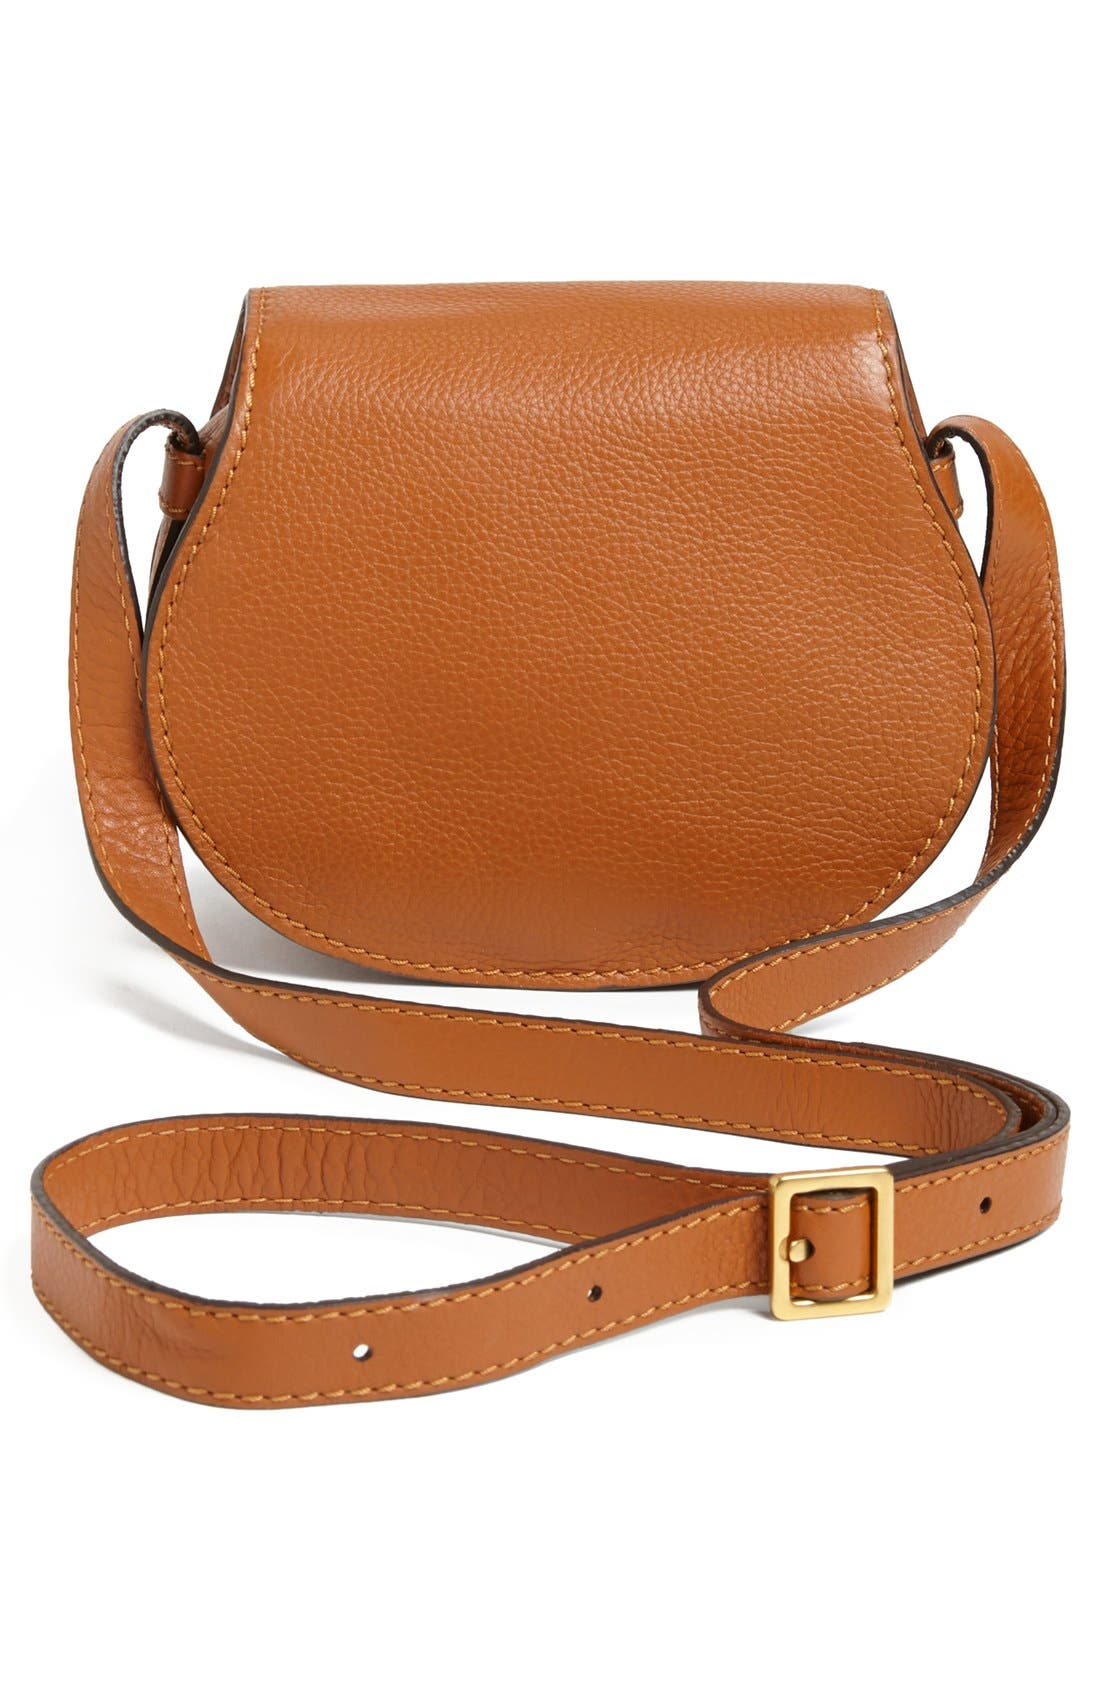 Alternate Image 3  - Chloé 'Mini Marcie' Leather Crossbody Bag